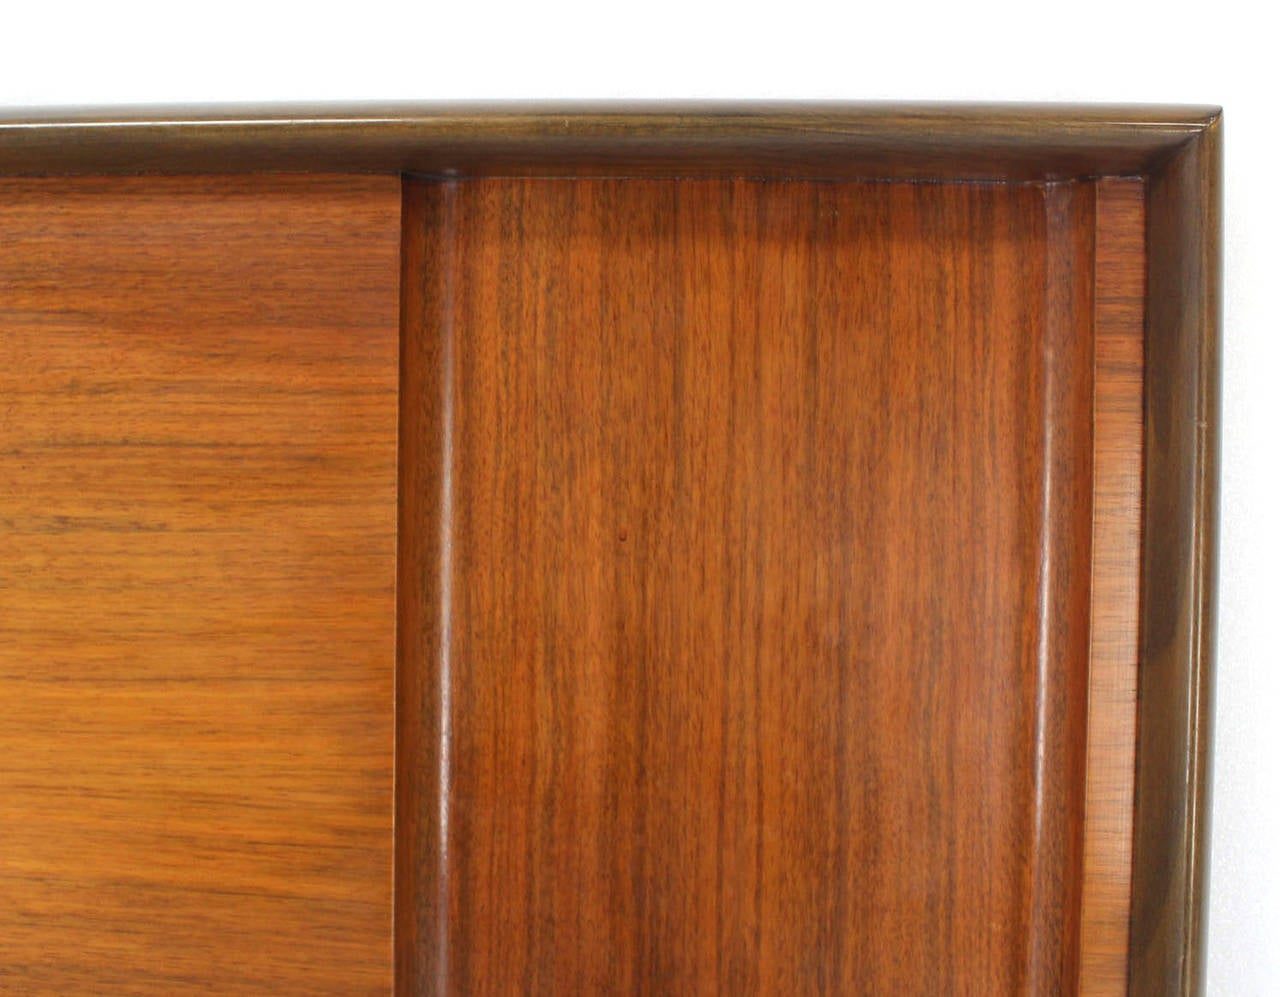 Lacquered Mid-Century Modern Walnut Full-Size Headboard by Edmond Spence For Sale